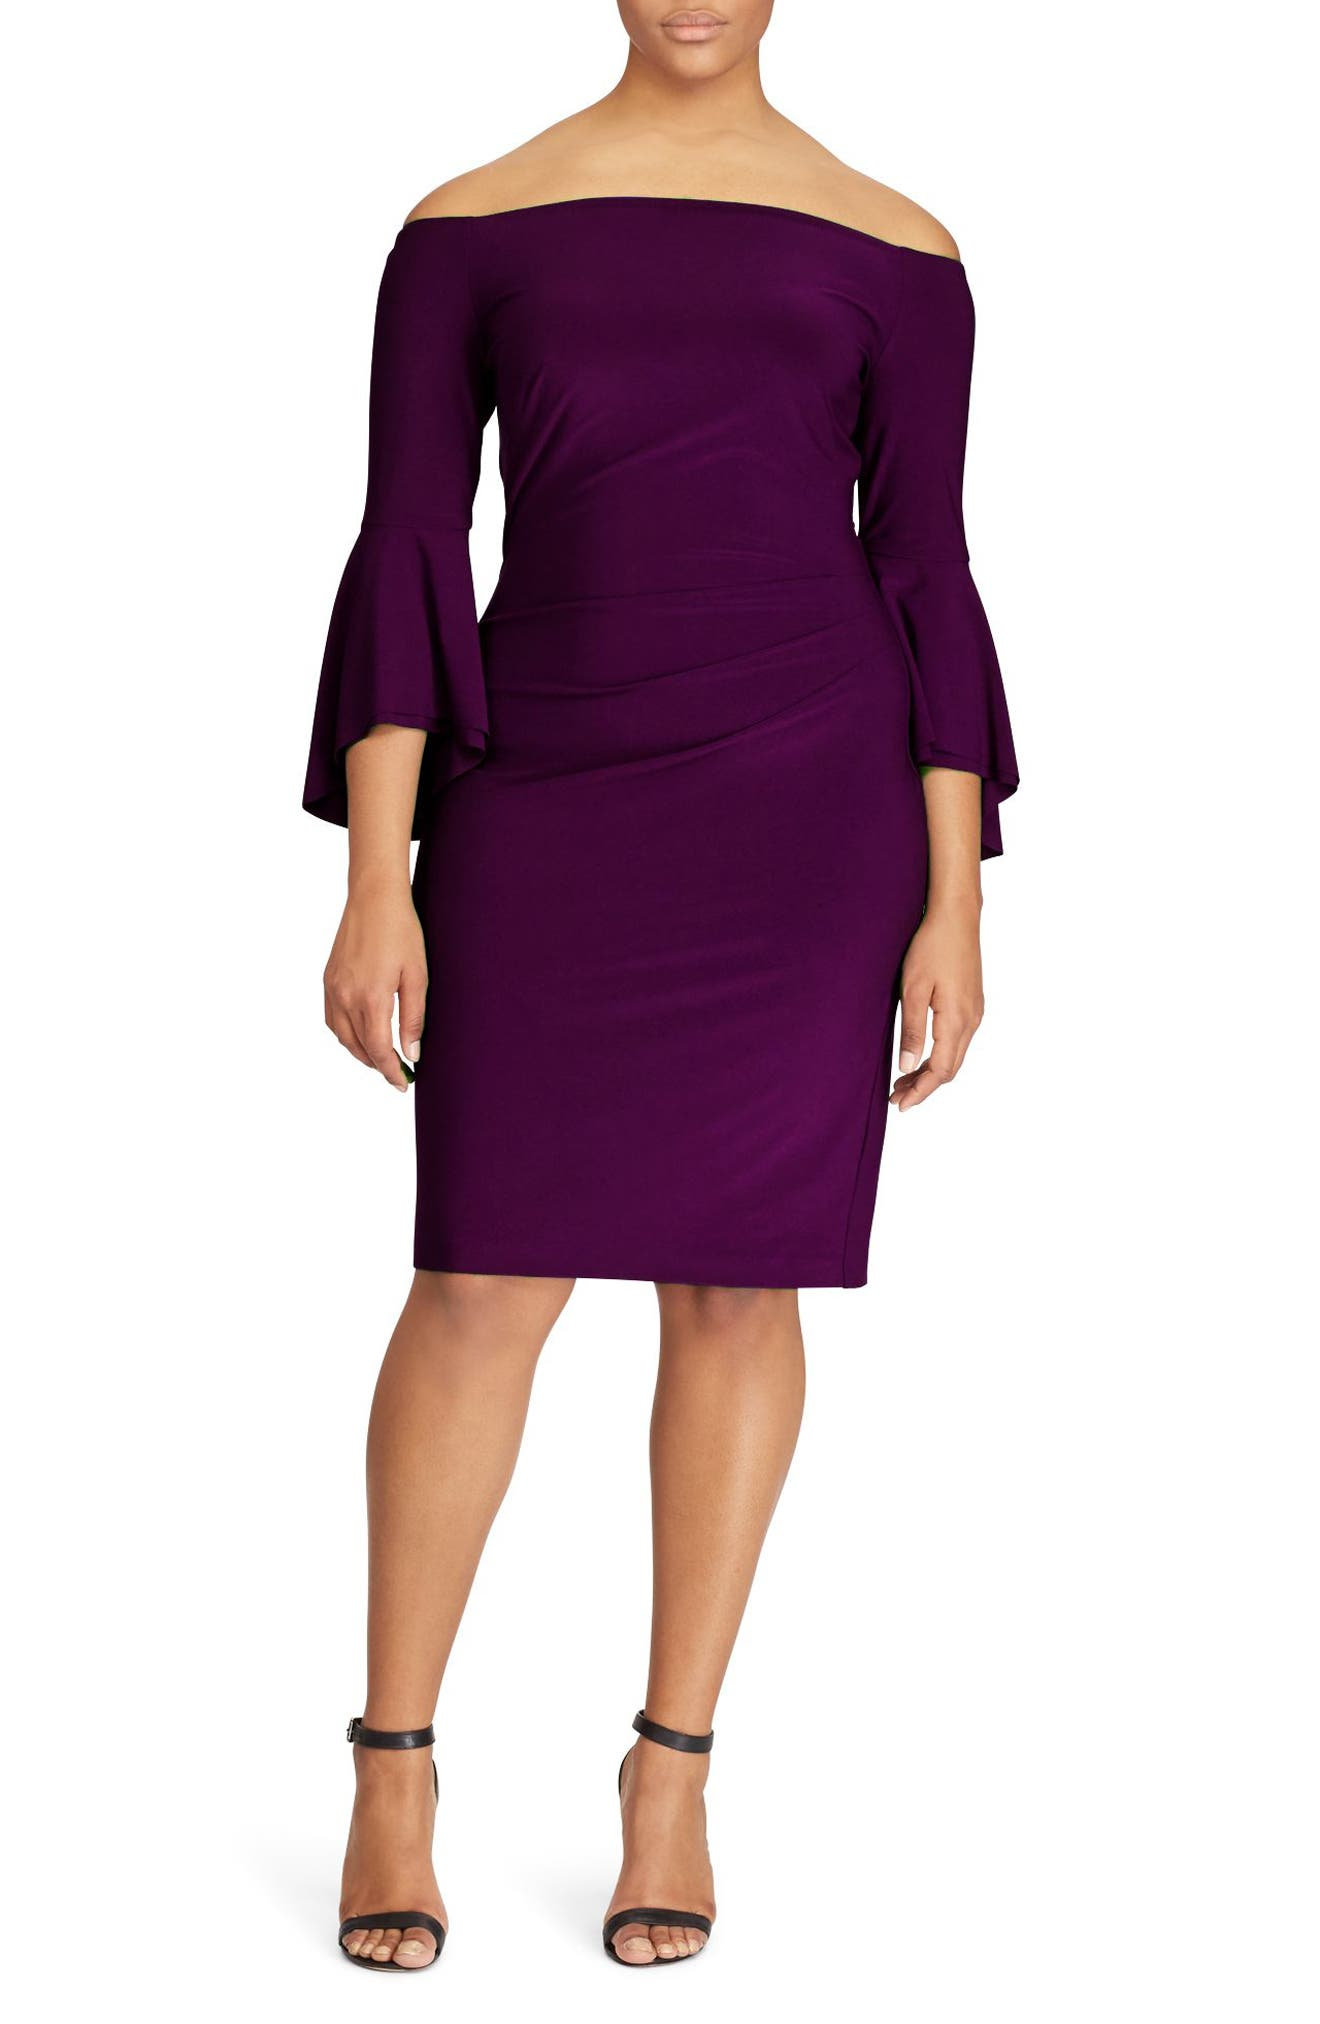 Alternate Image 1 Selected - Lauren Ralph Lauren Bell Sleeve Sheath Dress (Plus Size)